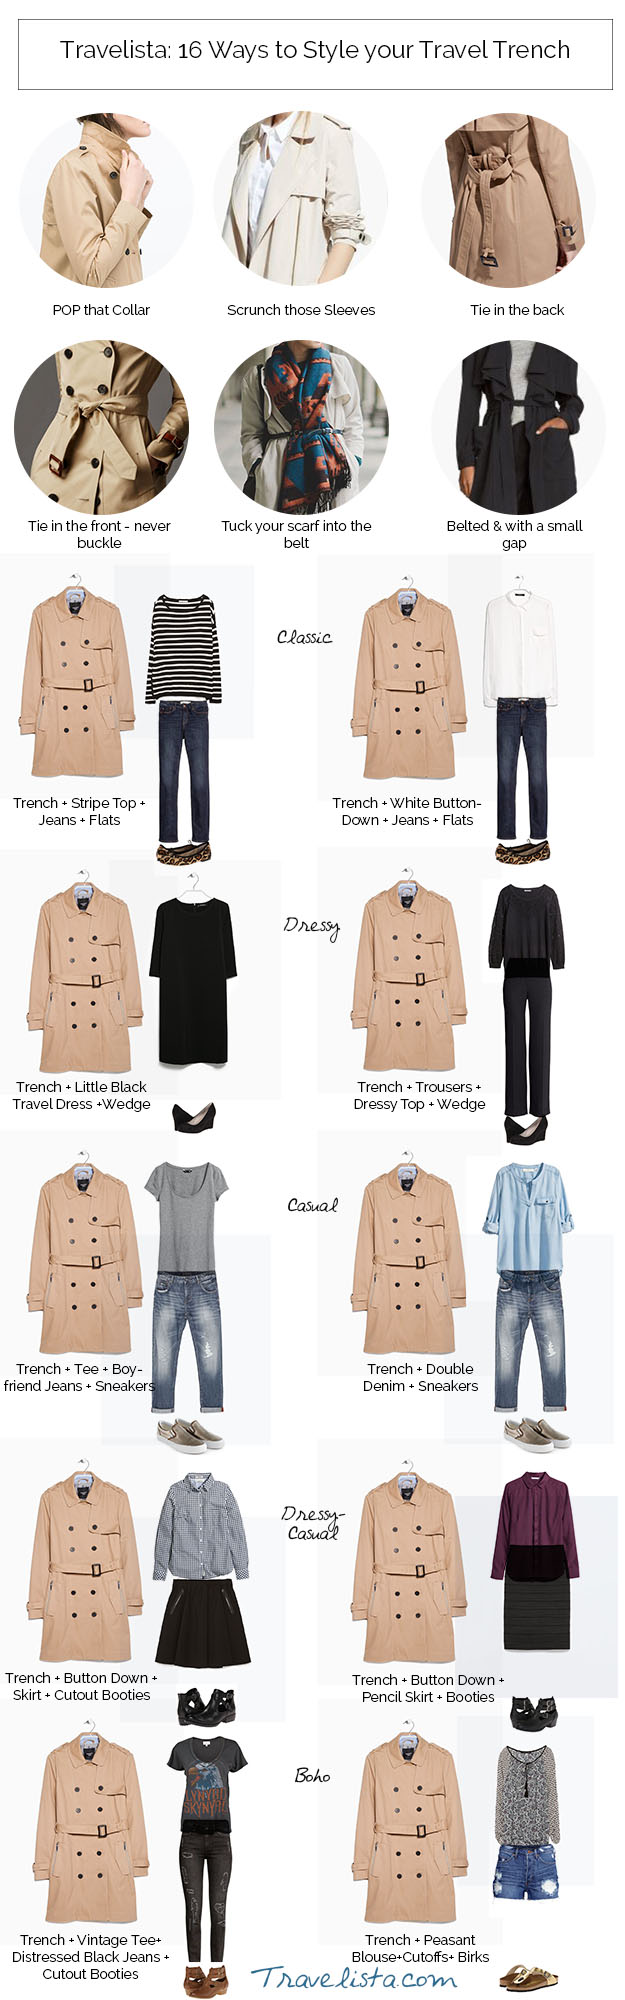 trav_trench_howtowear copy